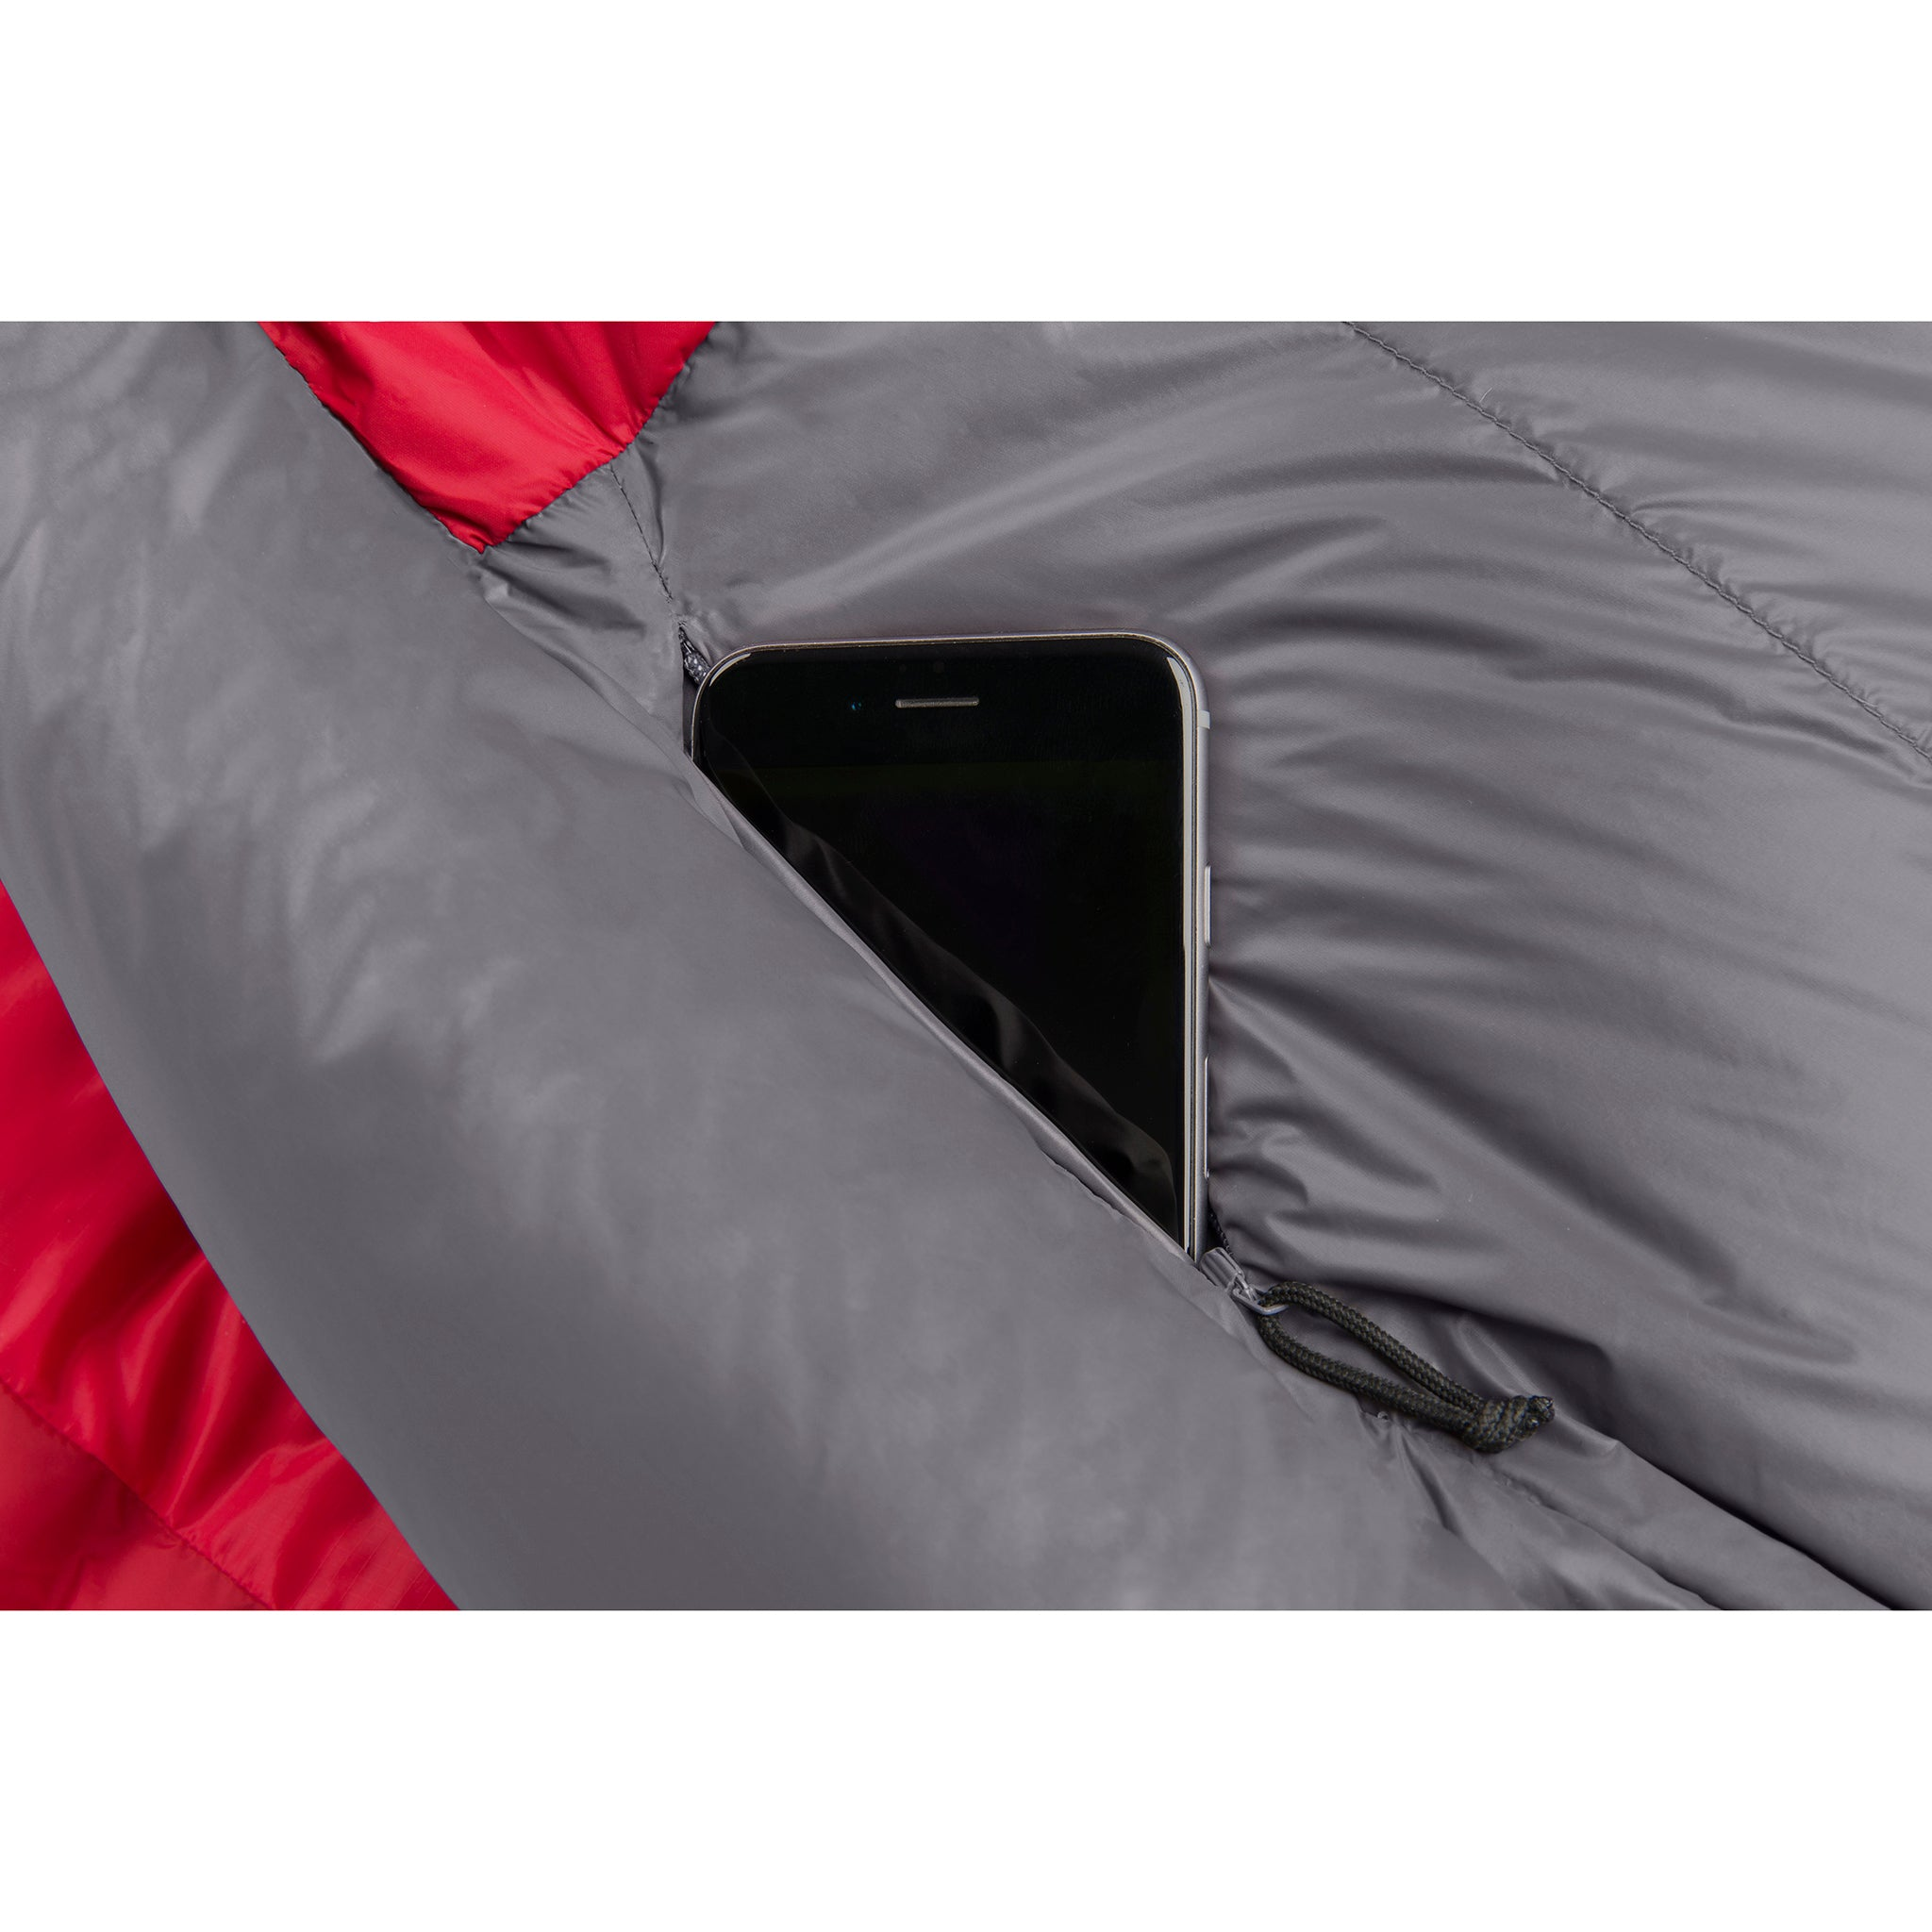 Alpine Down Winter Sleeping Bag (-5°F & -40°F)